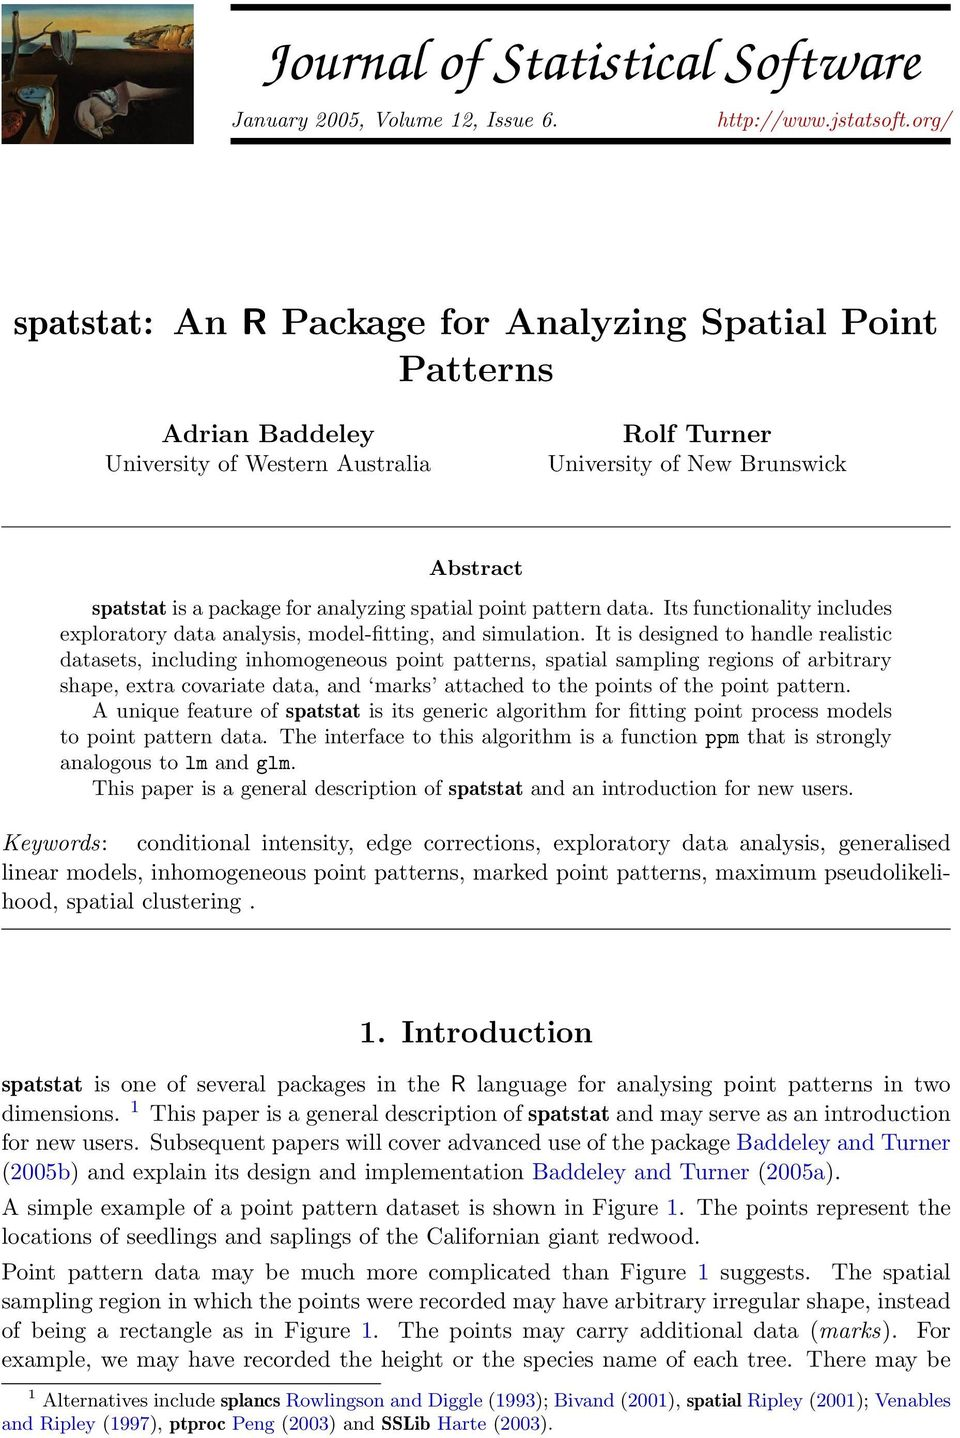 spatial point pattern data. Its functionality includes exploratory data analysis, model-fitting, and simulation.